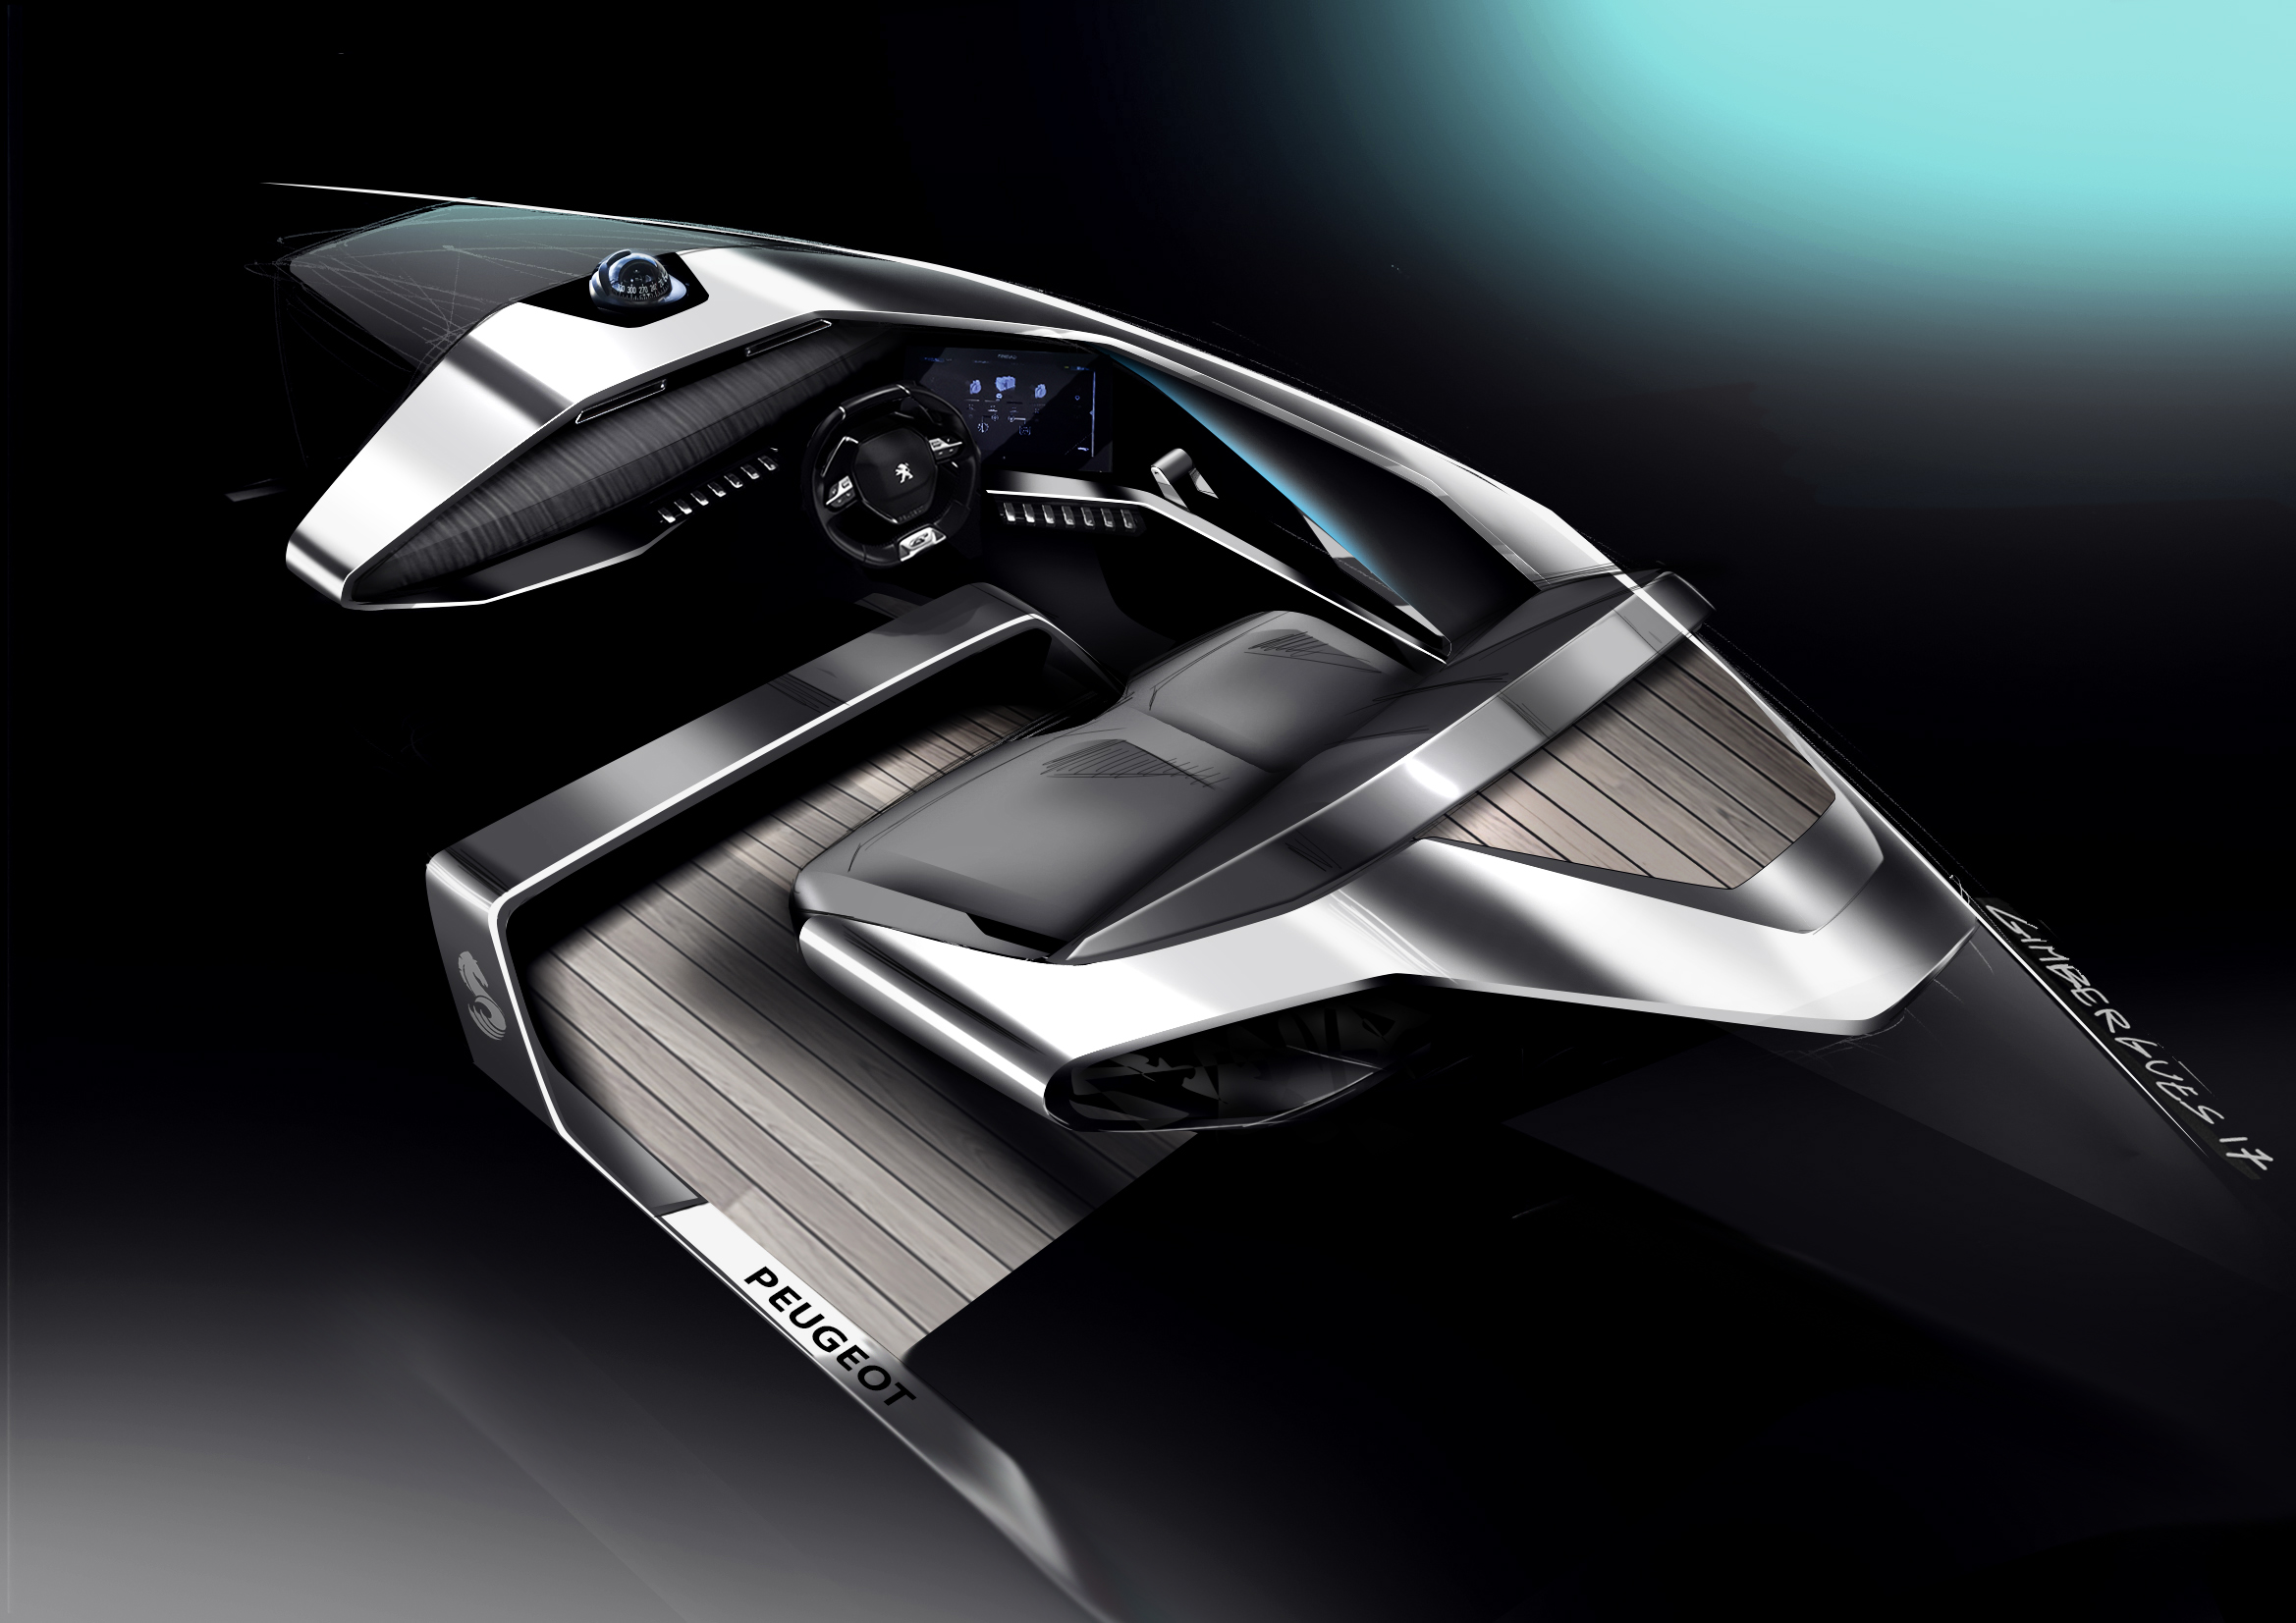 Sea Drive Concept Boat: A Combination of Peugeot and Beneteau Technology